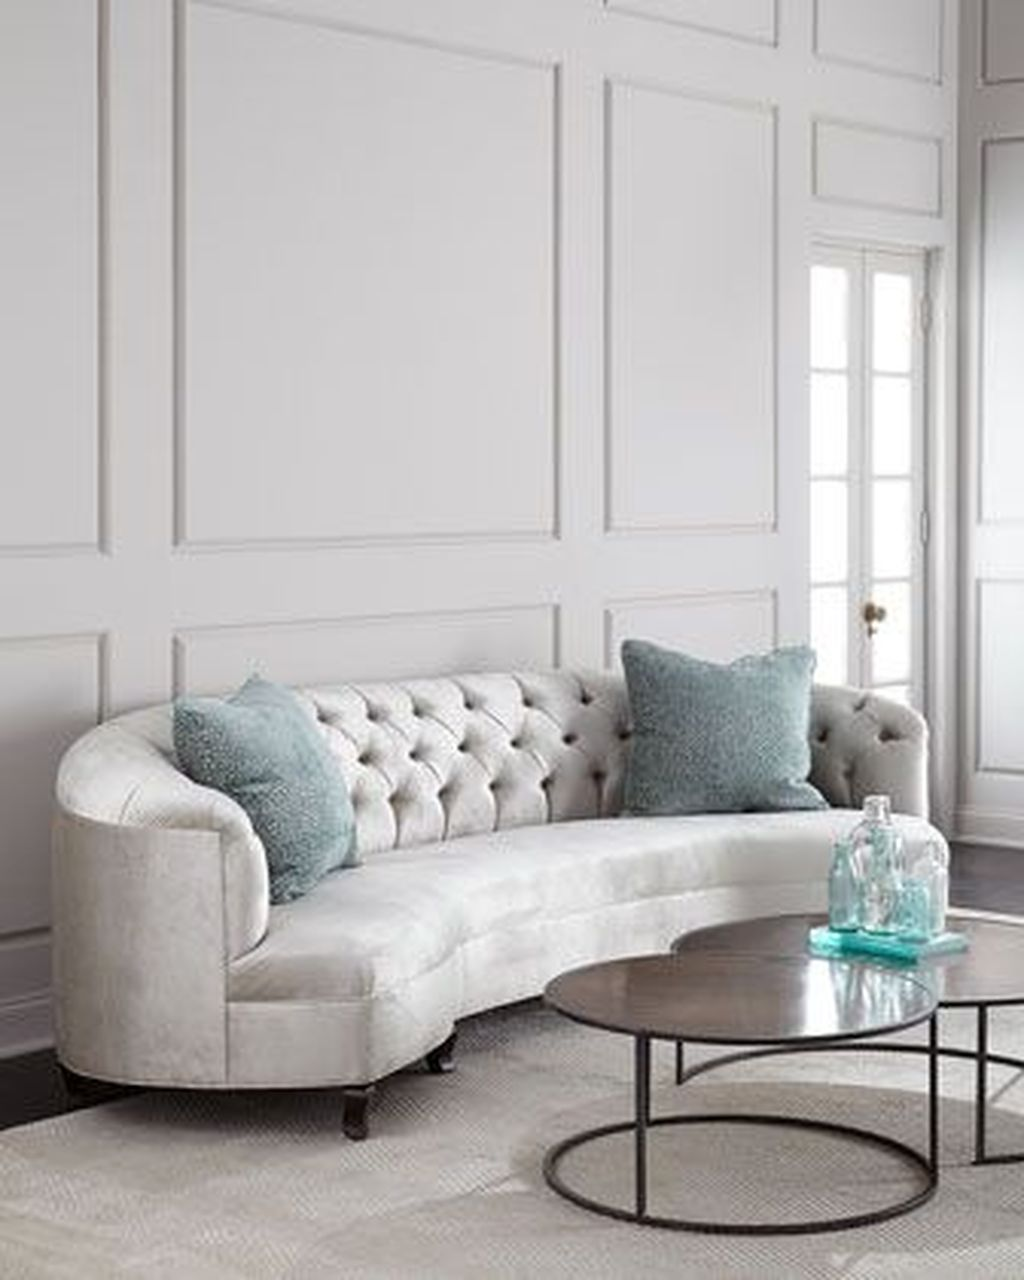 The Best Curved Sofa For Living Room Layout Ideas 16